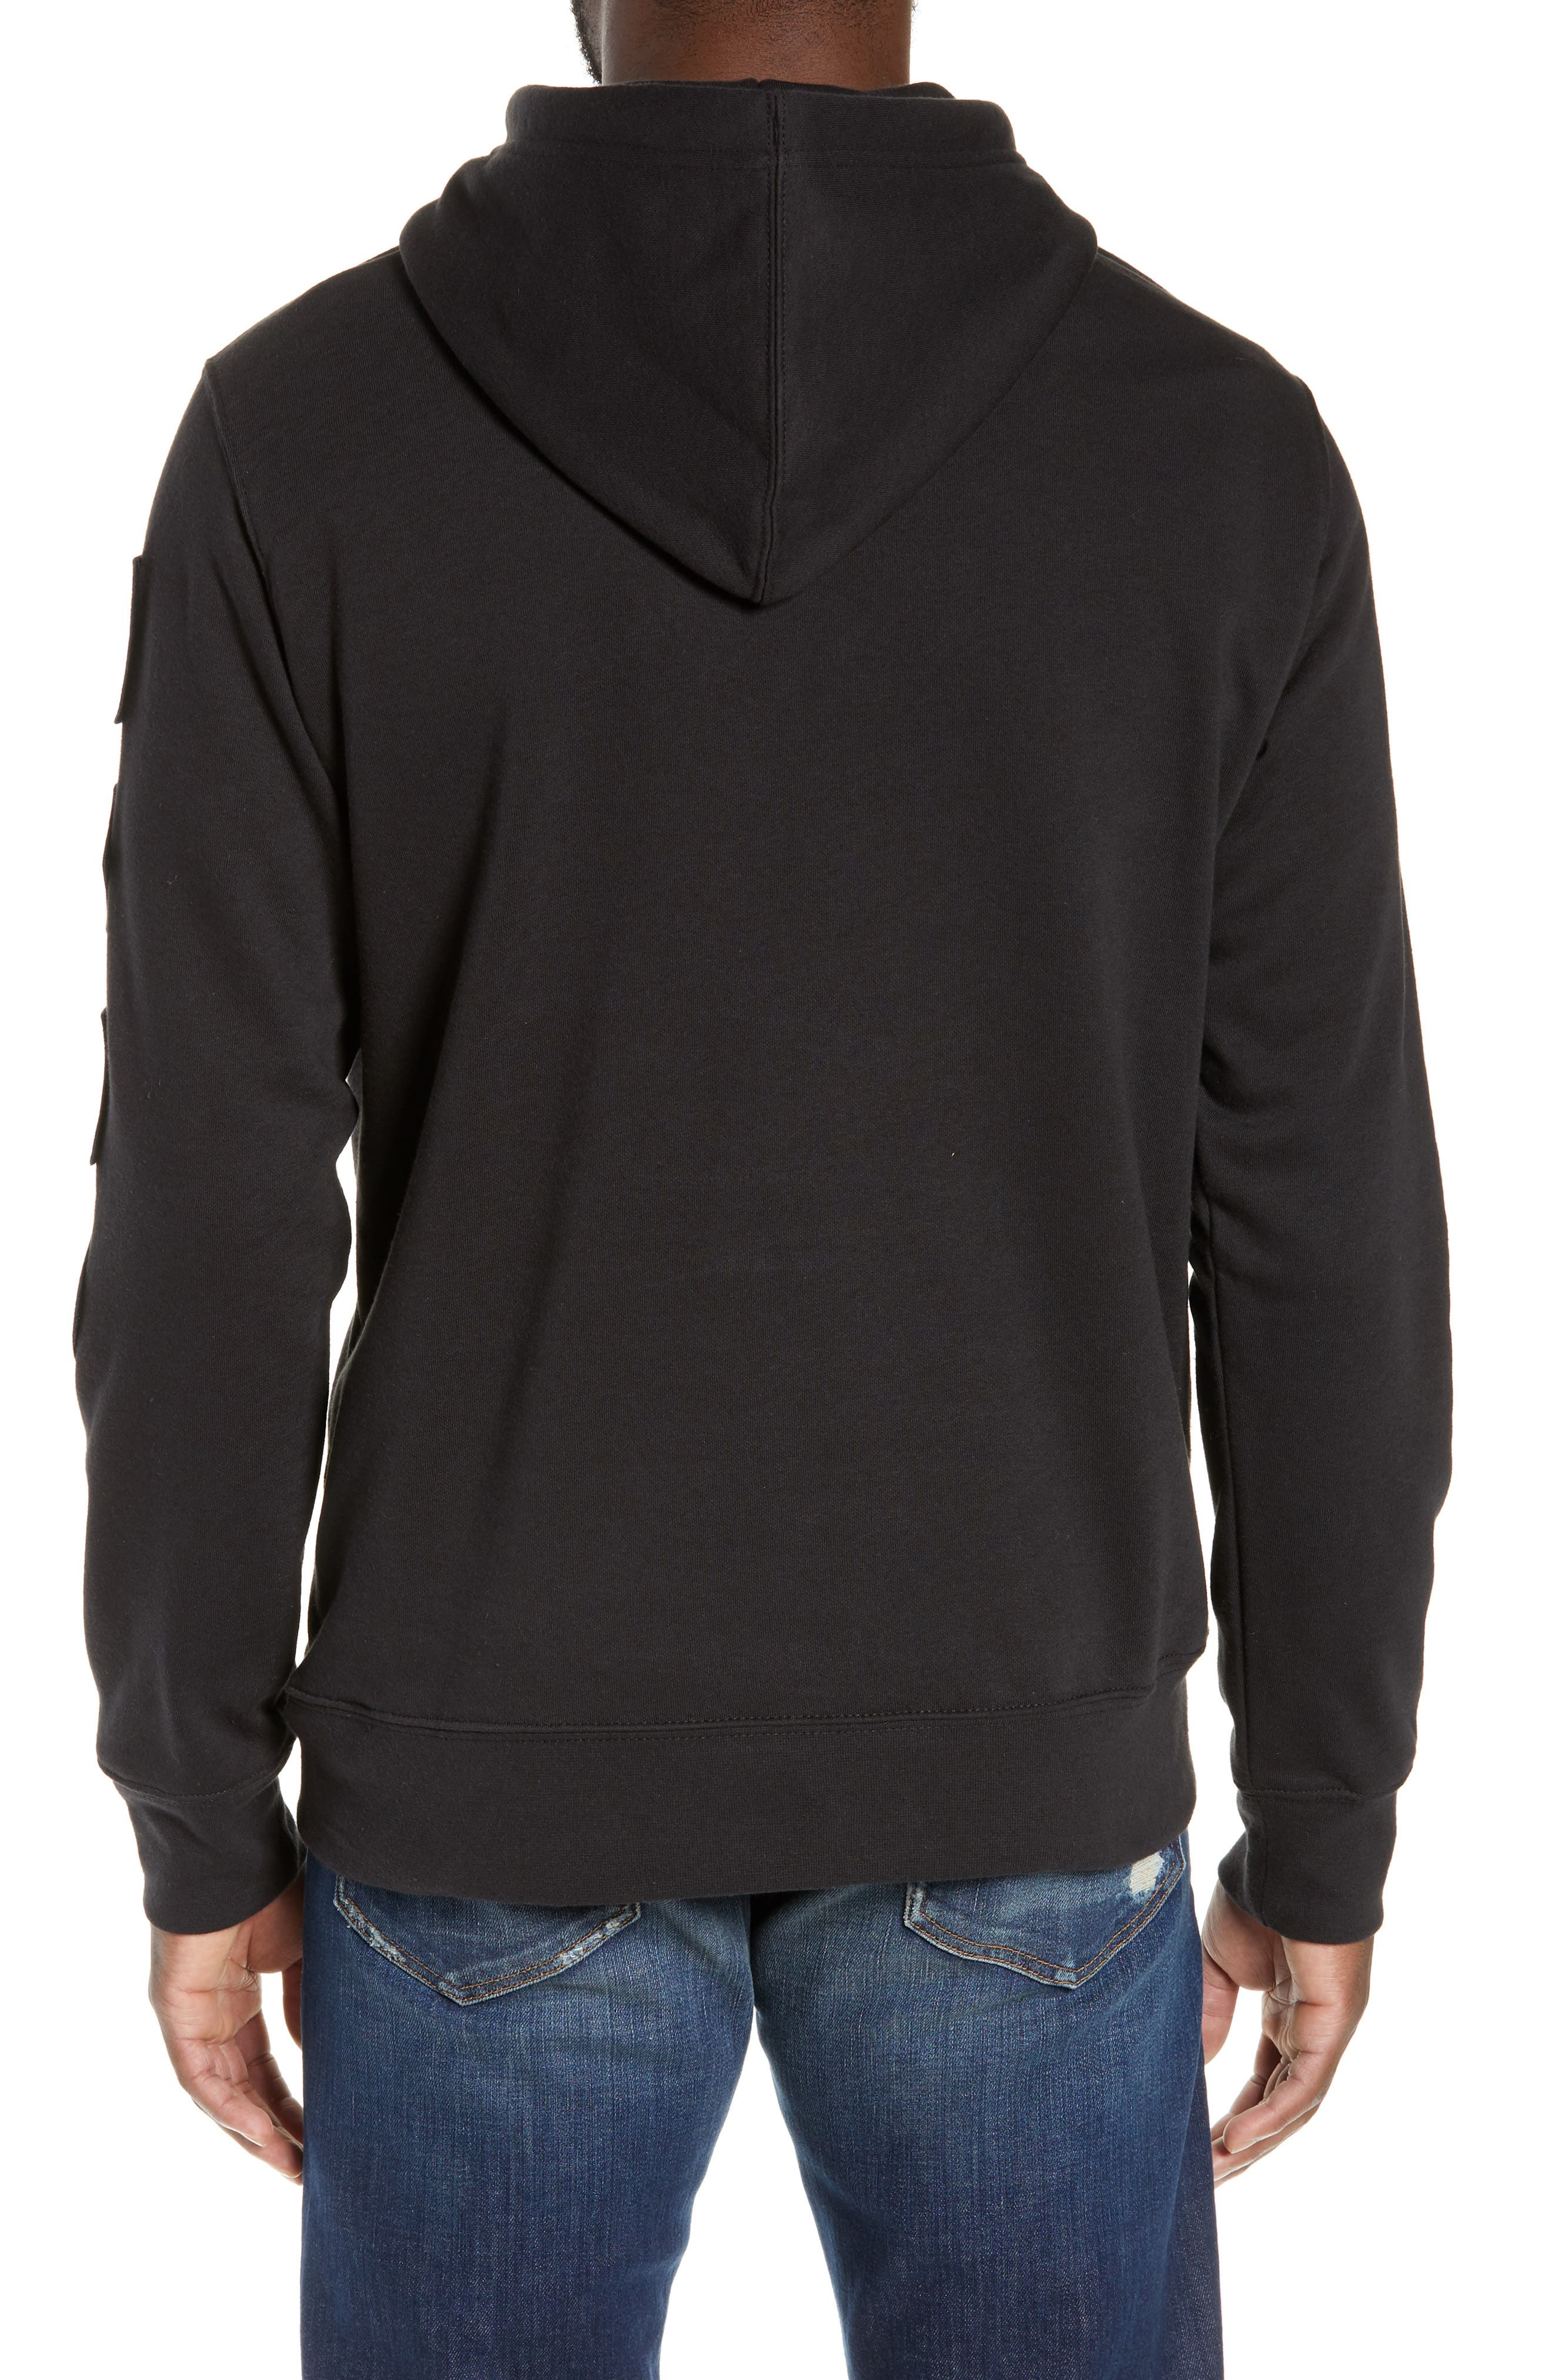 Urban Patches Hoodie,                             Alternate thumbnail 2, color,                             001